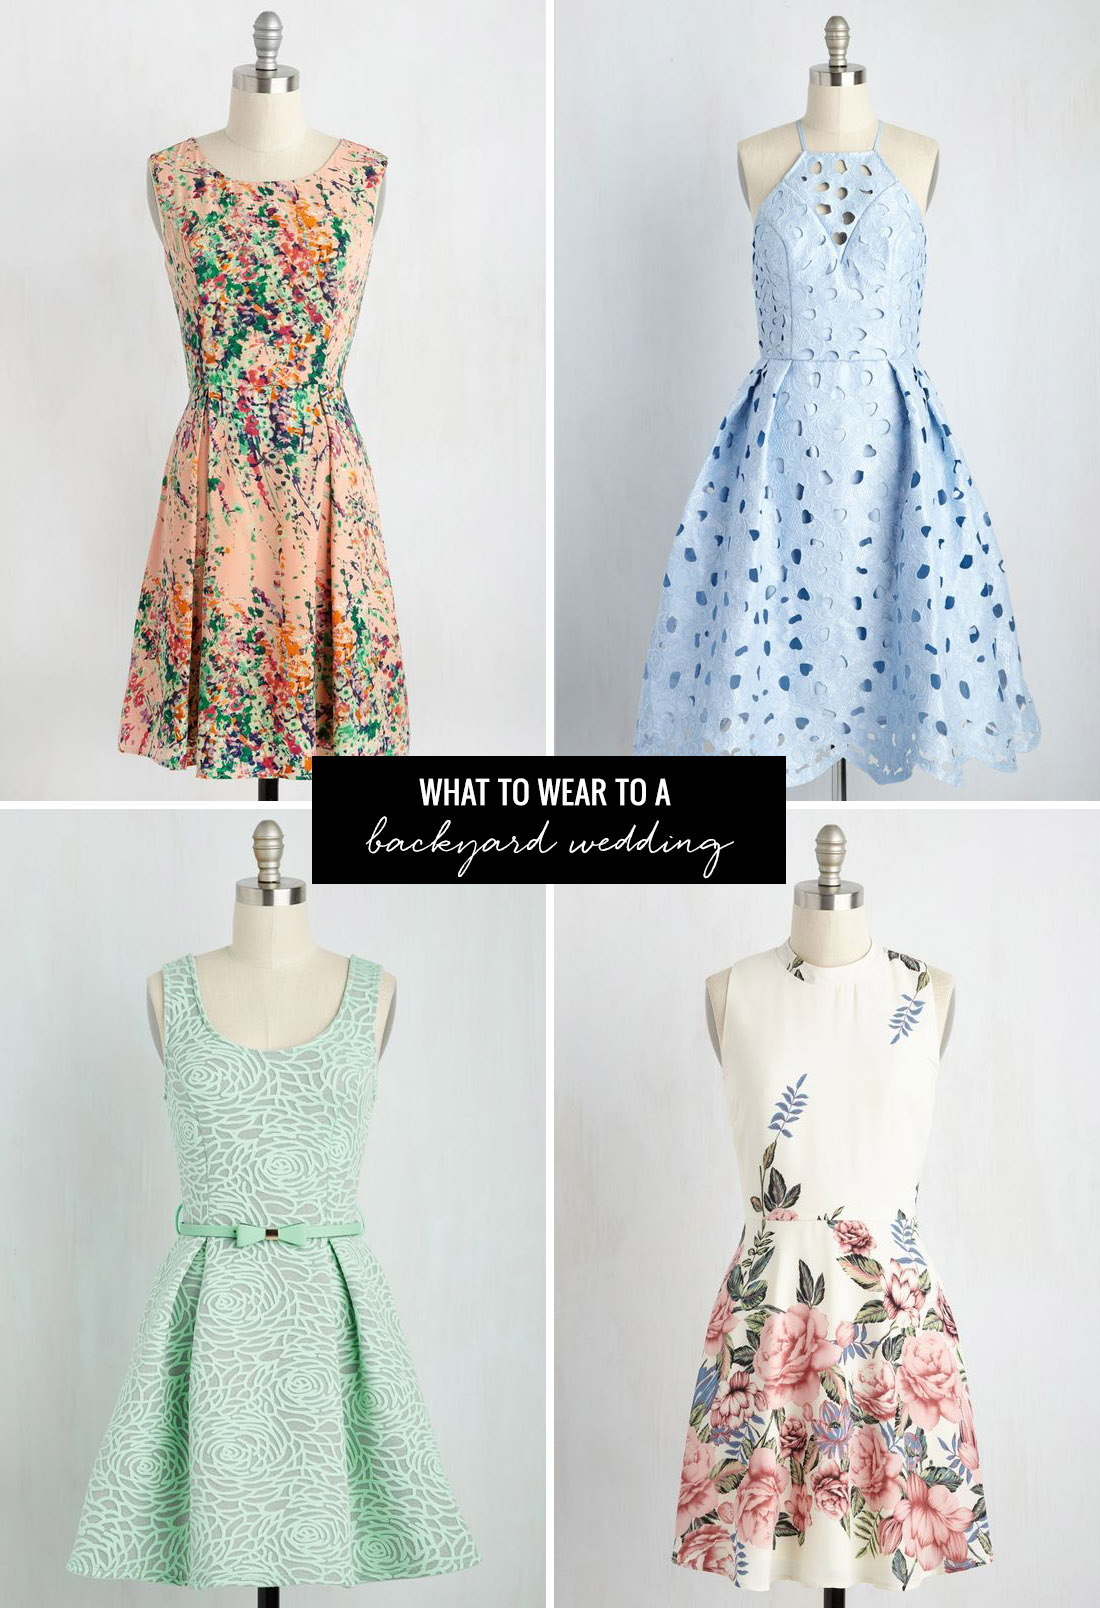 what to wear to a summer wedding with modcloth backyard wedding dresses what to wear to a backyard wedding